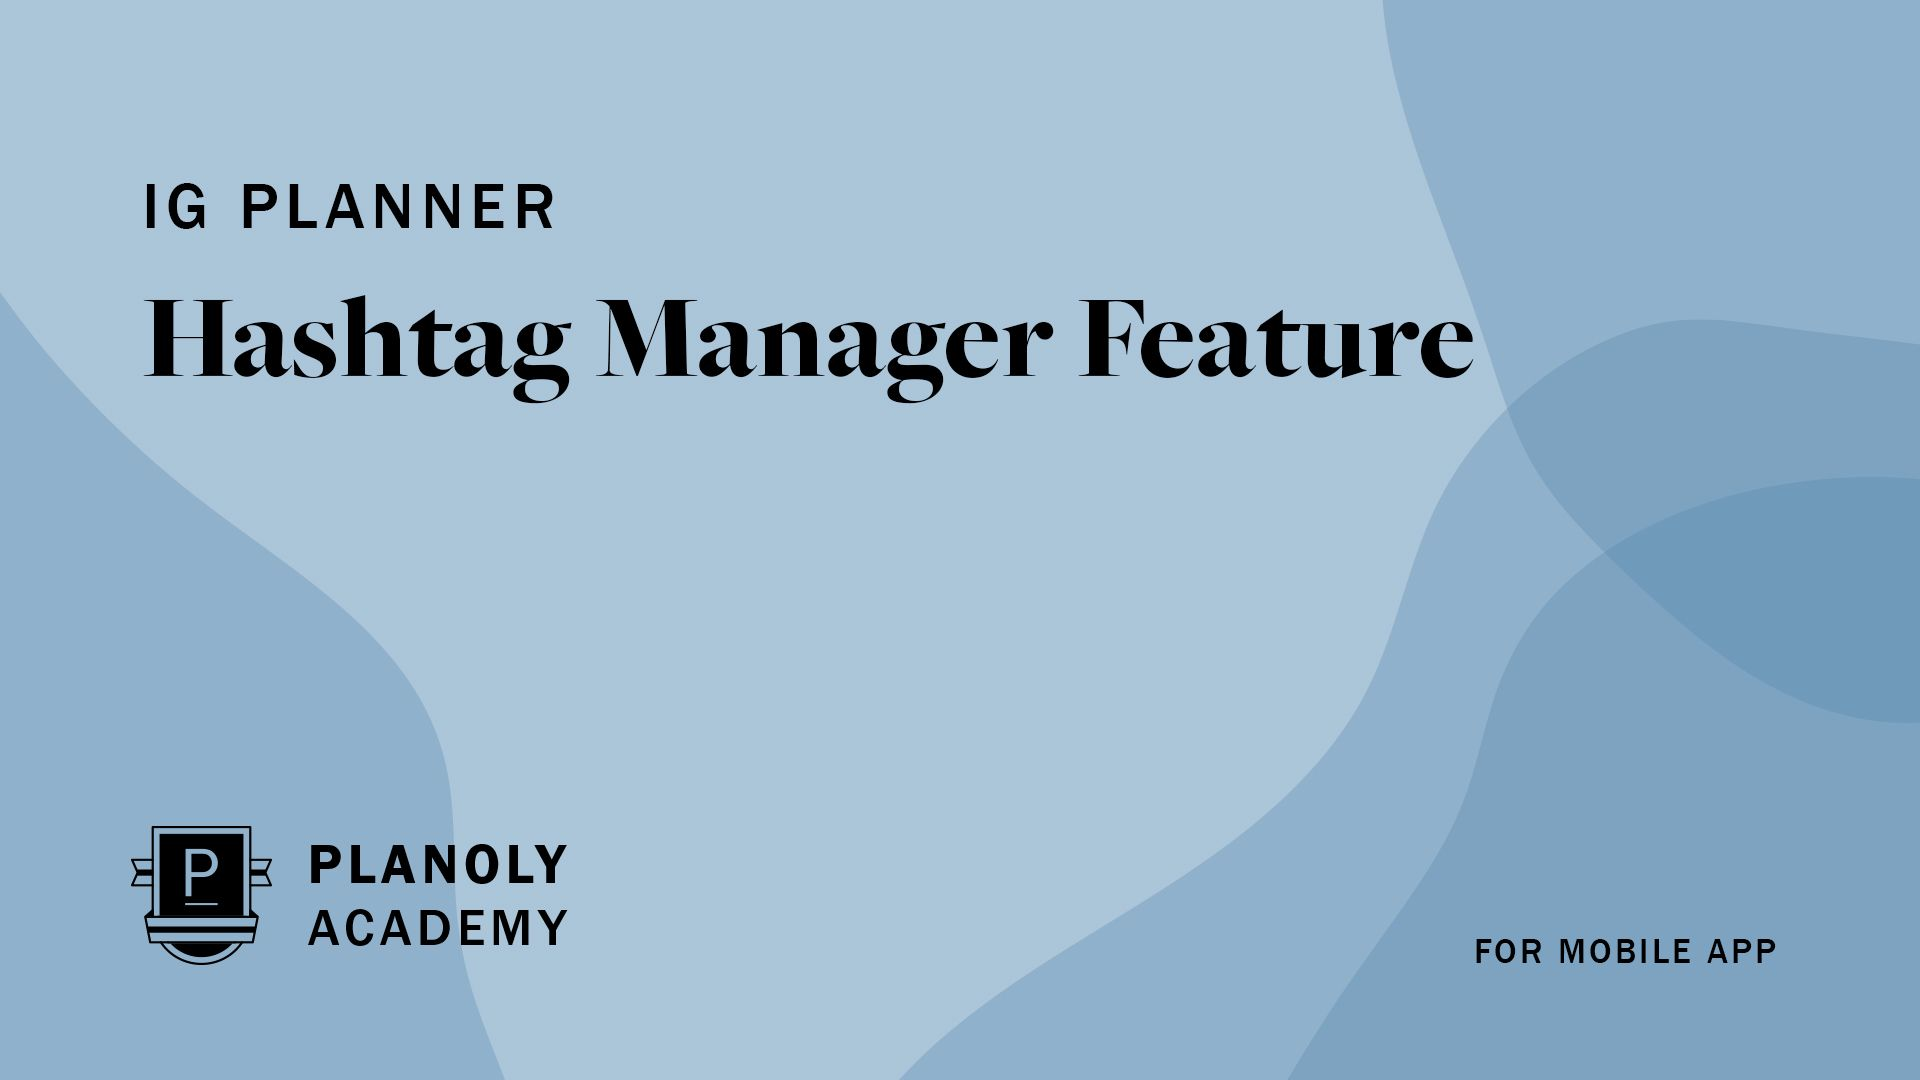 Hashtag Manager Feature